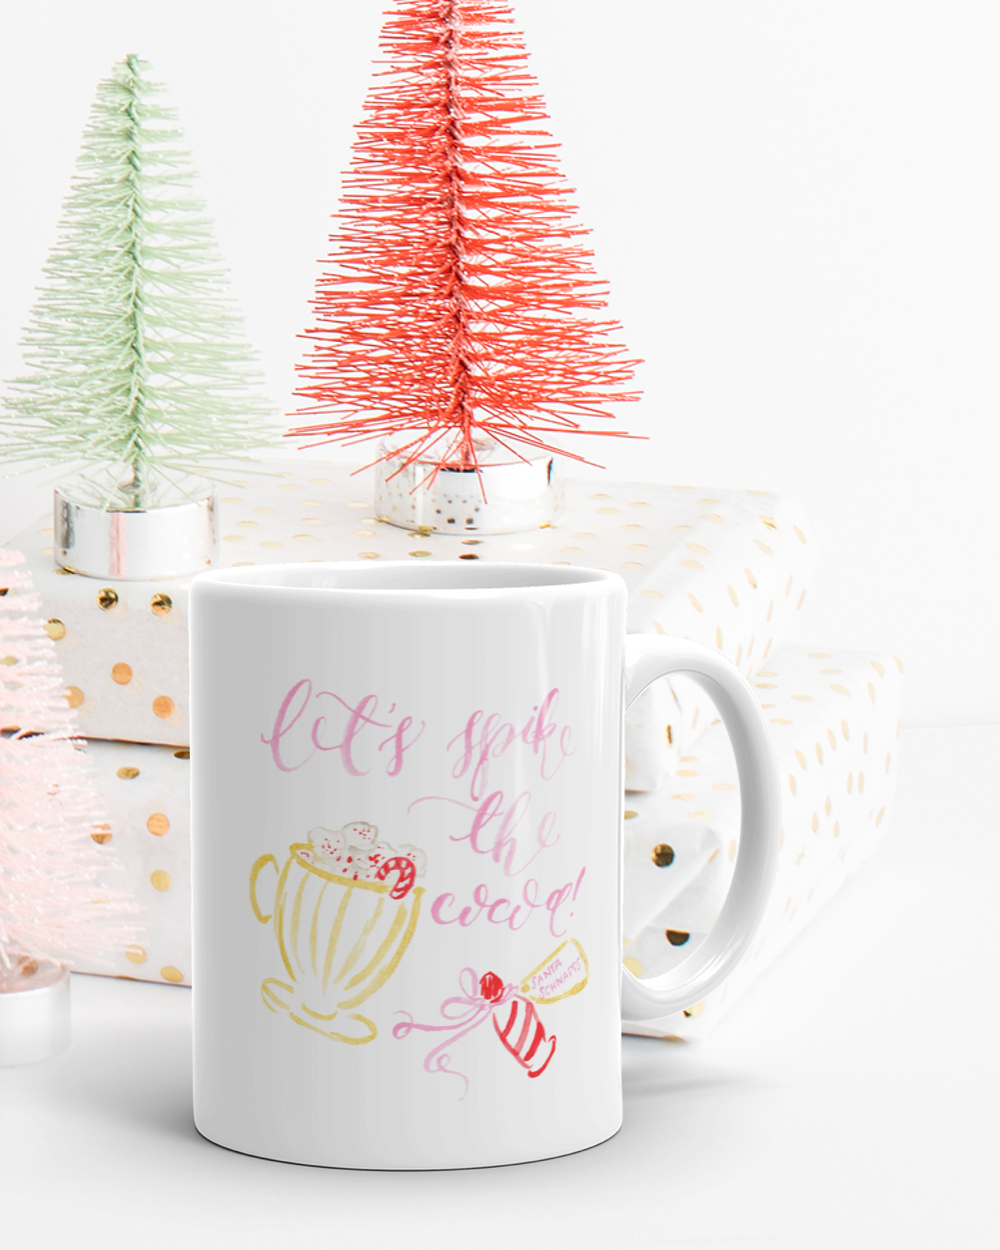 Let's Spike the Cocoa Watercolor Christmas Mug by Simply Jessica Marie